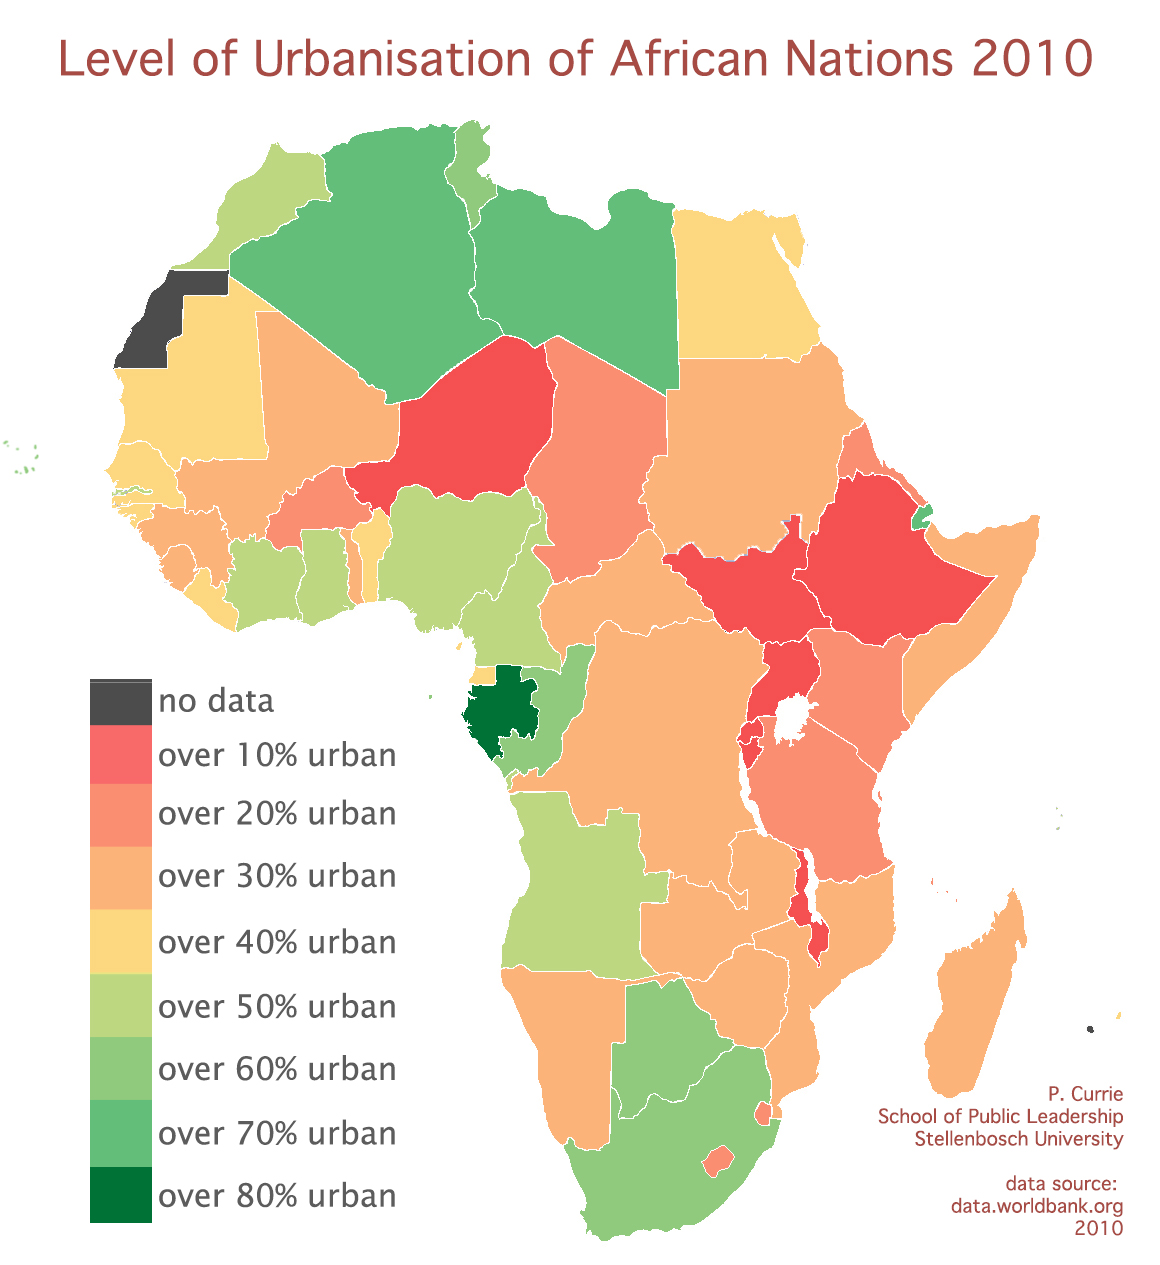 Levels of urbanisation in Africa. Source: Paul Currie (provided)